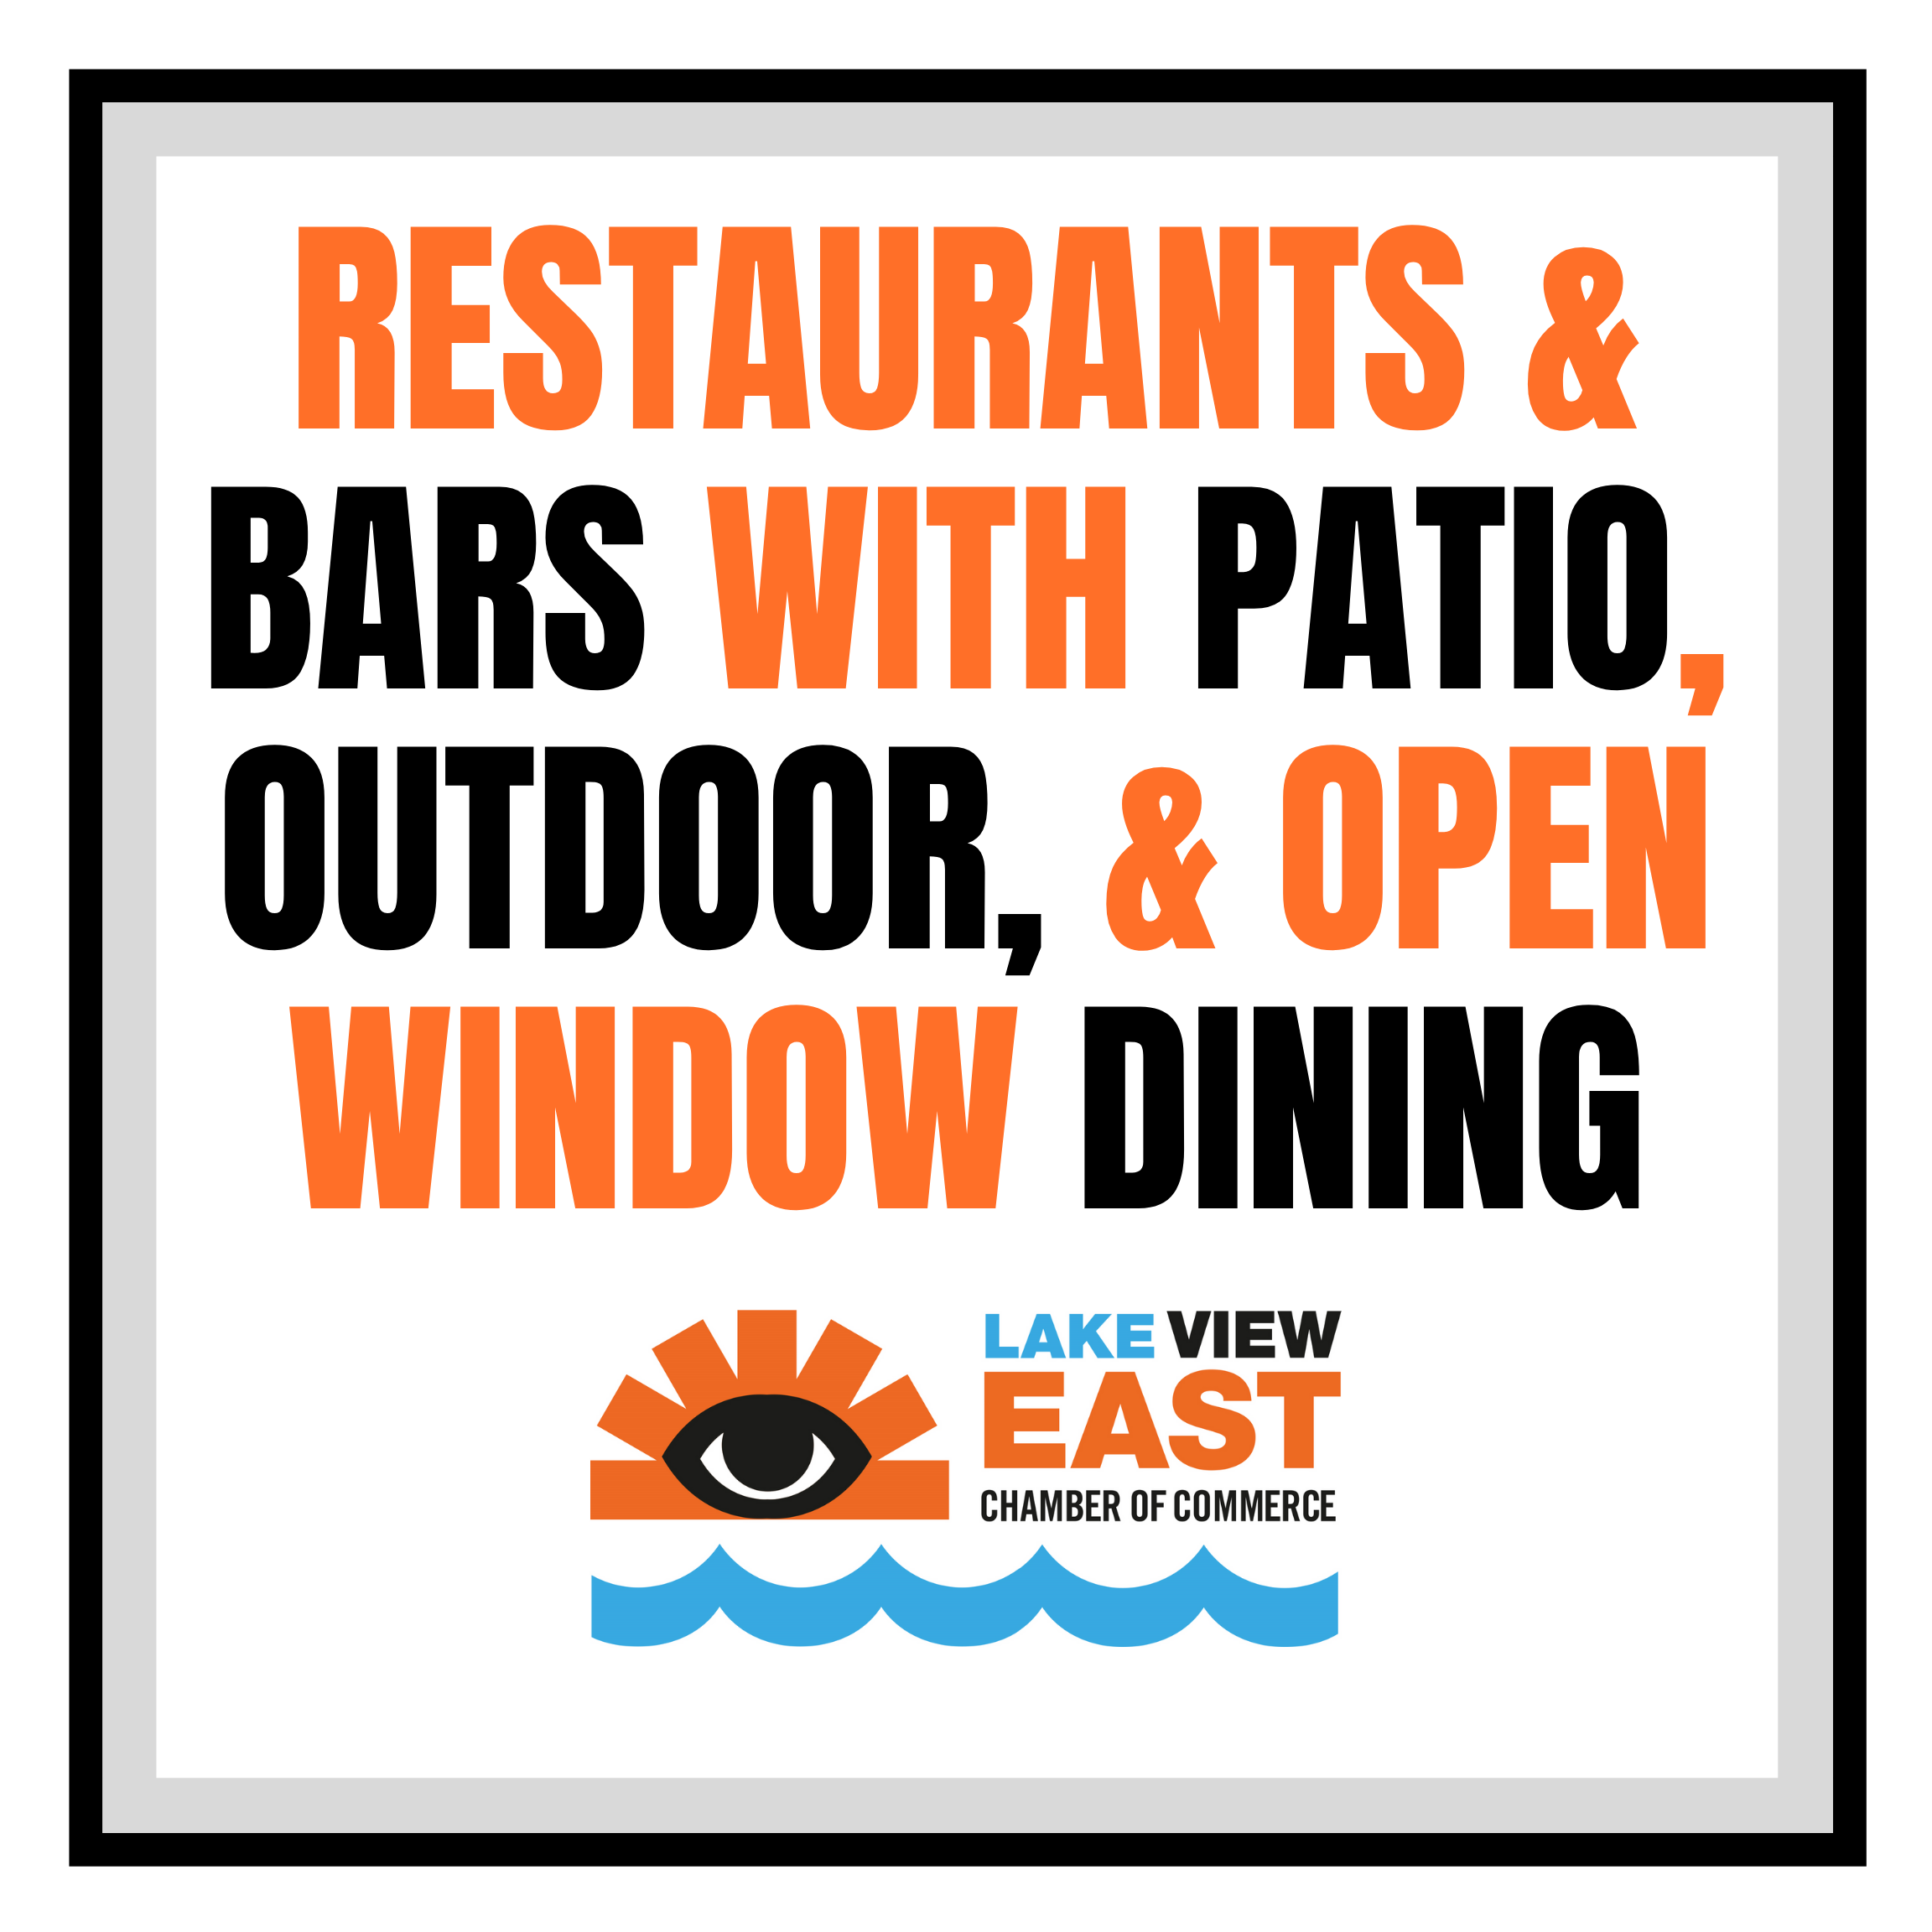 open outdoor patio sidewalk dining windows lake view lakeview east restaurants bars